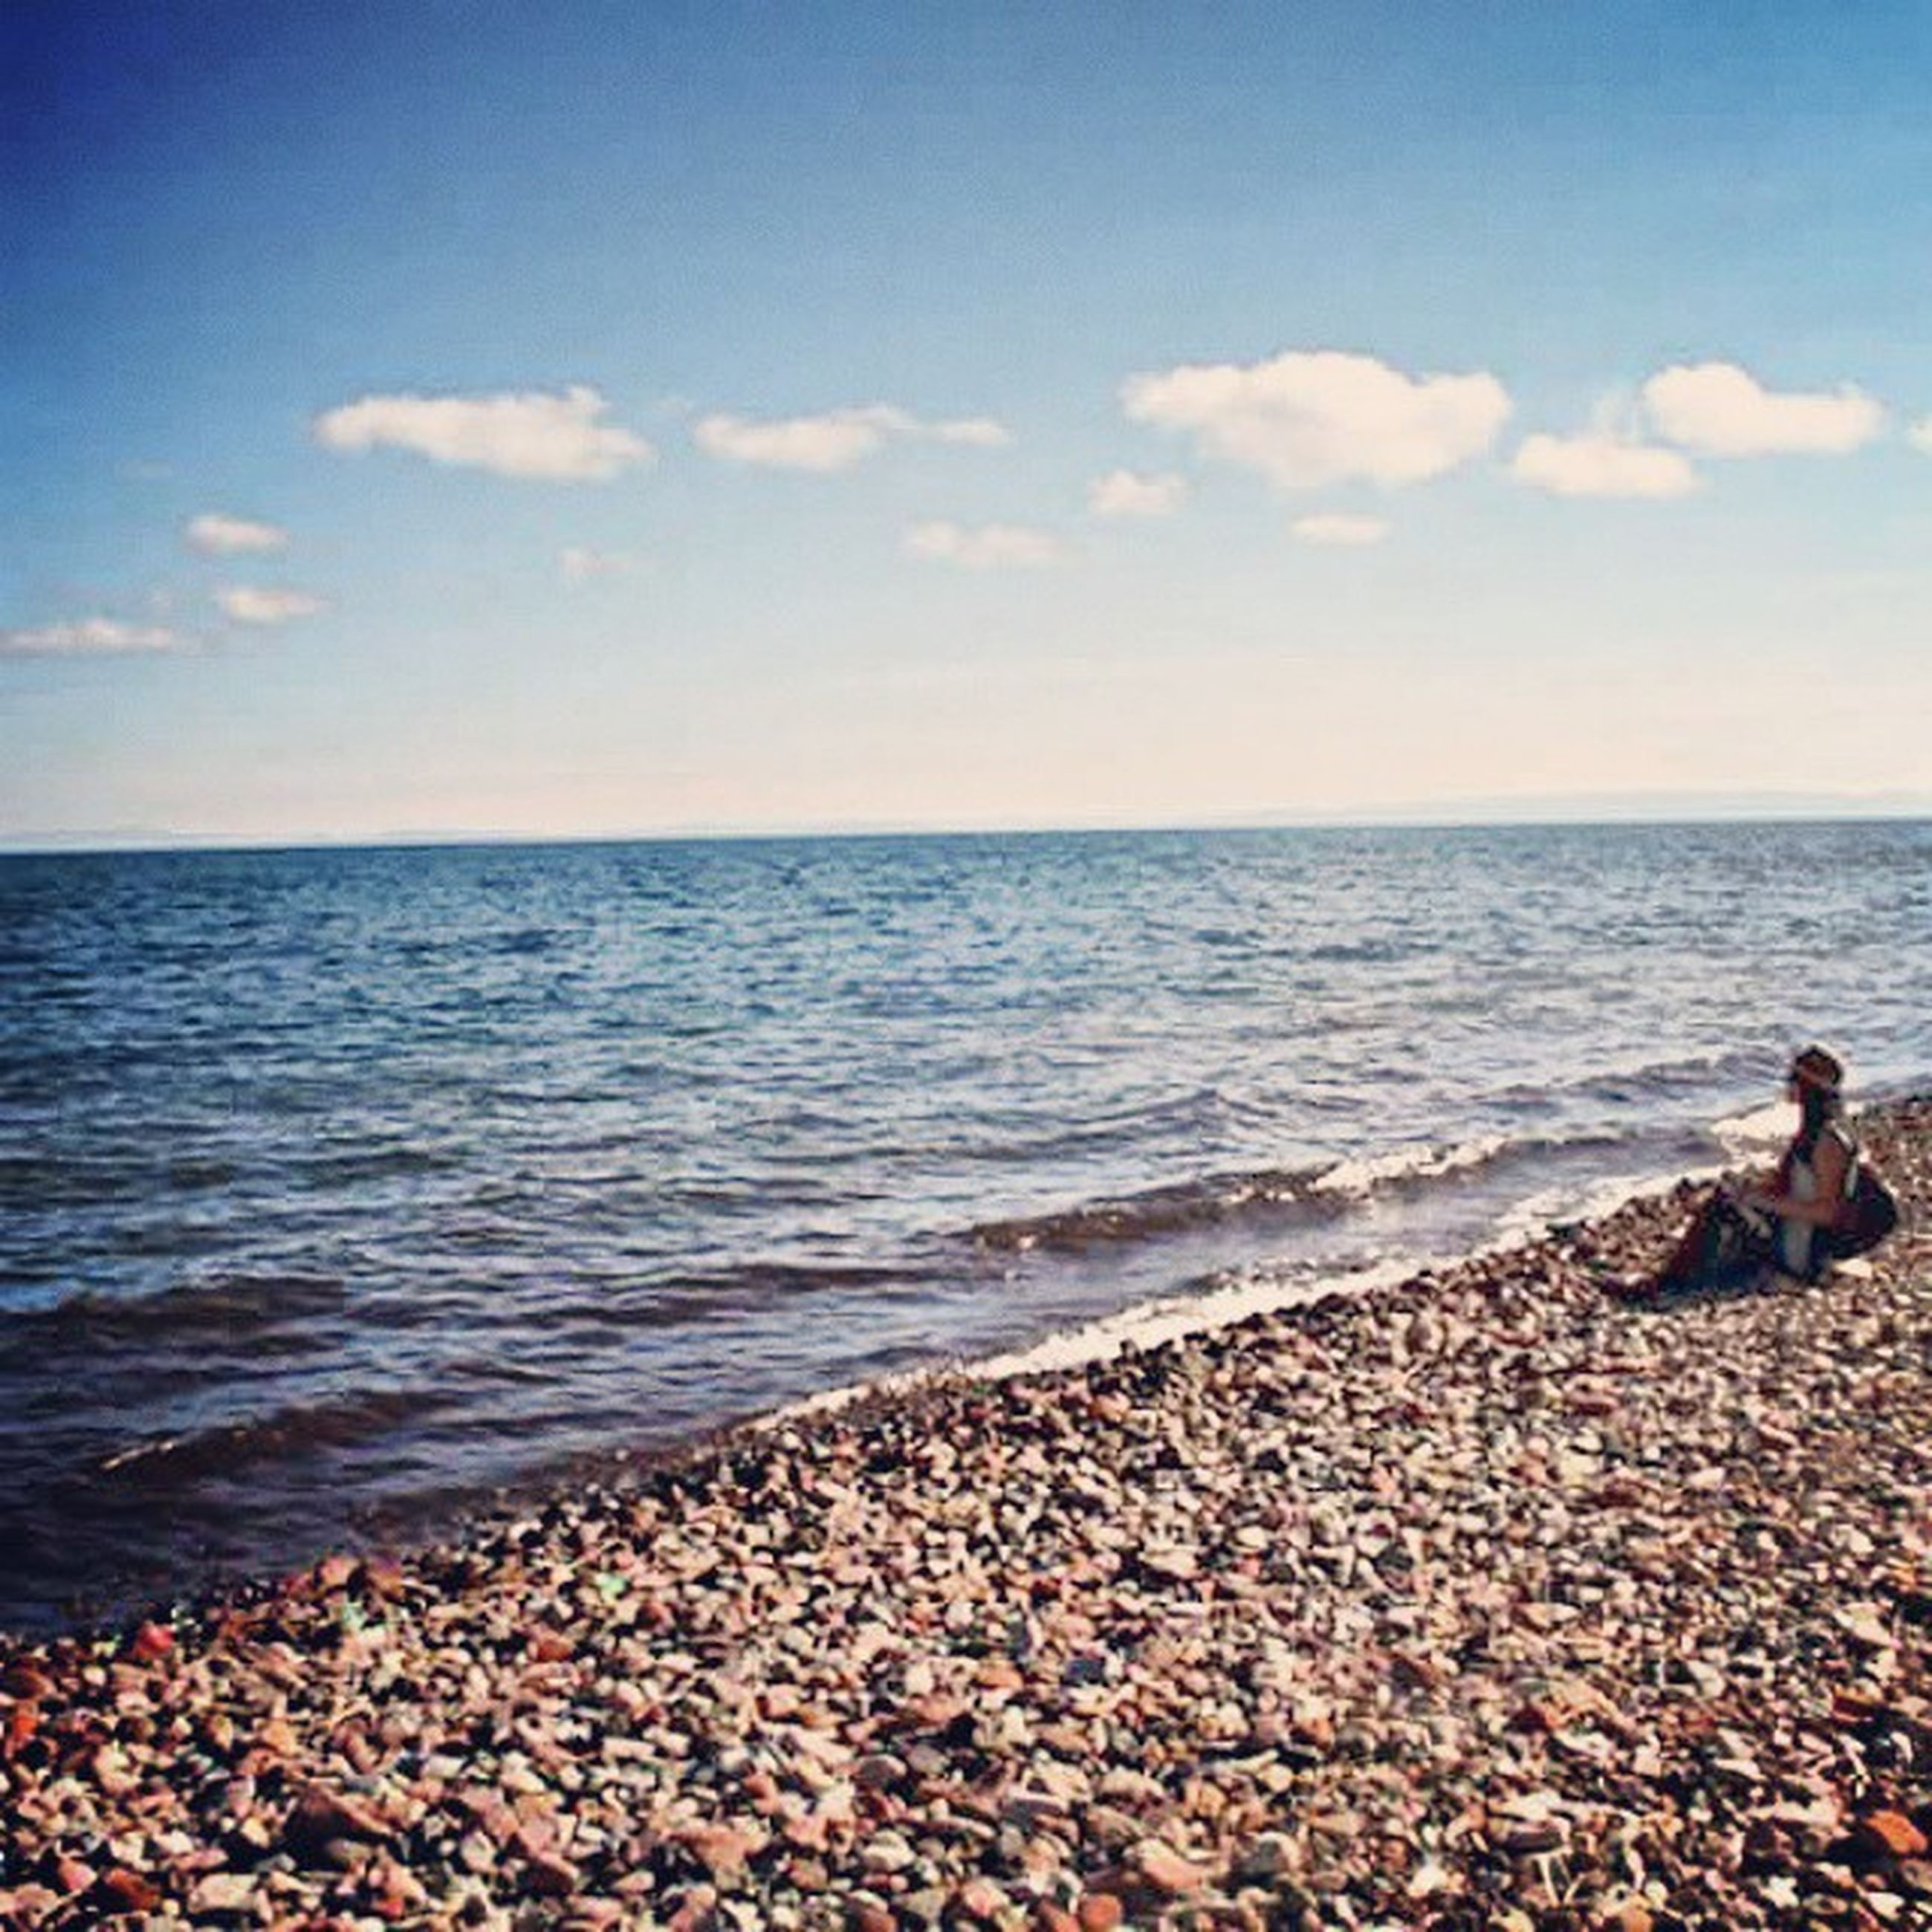 sea, water, horizon over water, sky, beach, scenics, shore, beauty in nature, tranquility, tranquil scene, nature, rock - object, leisure activity, stone - object, idyllic, cloud - sky, lifestyles, pebble